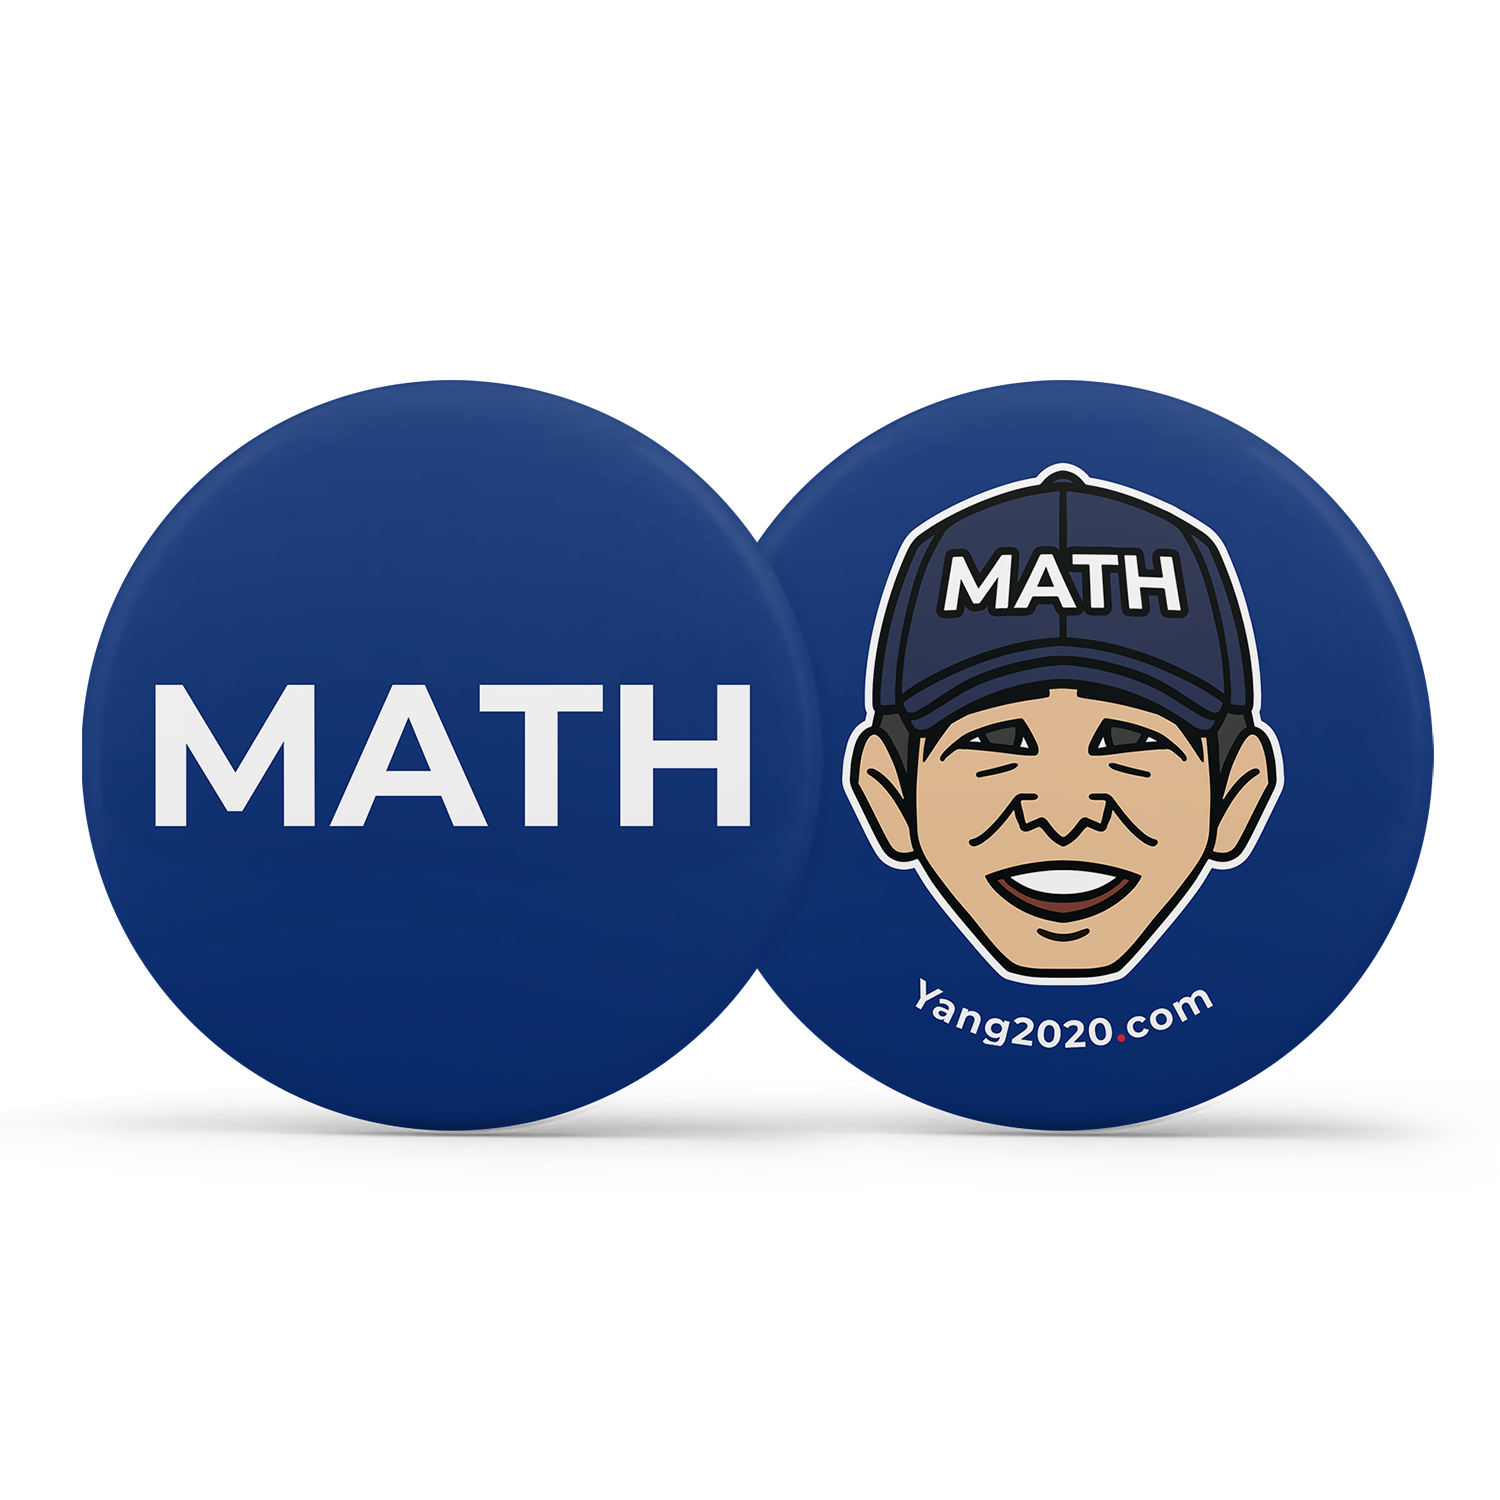 MATH_ButtonB.png